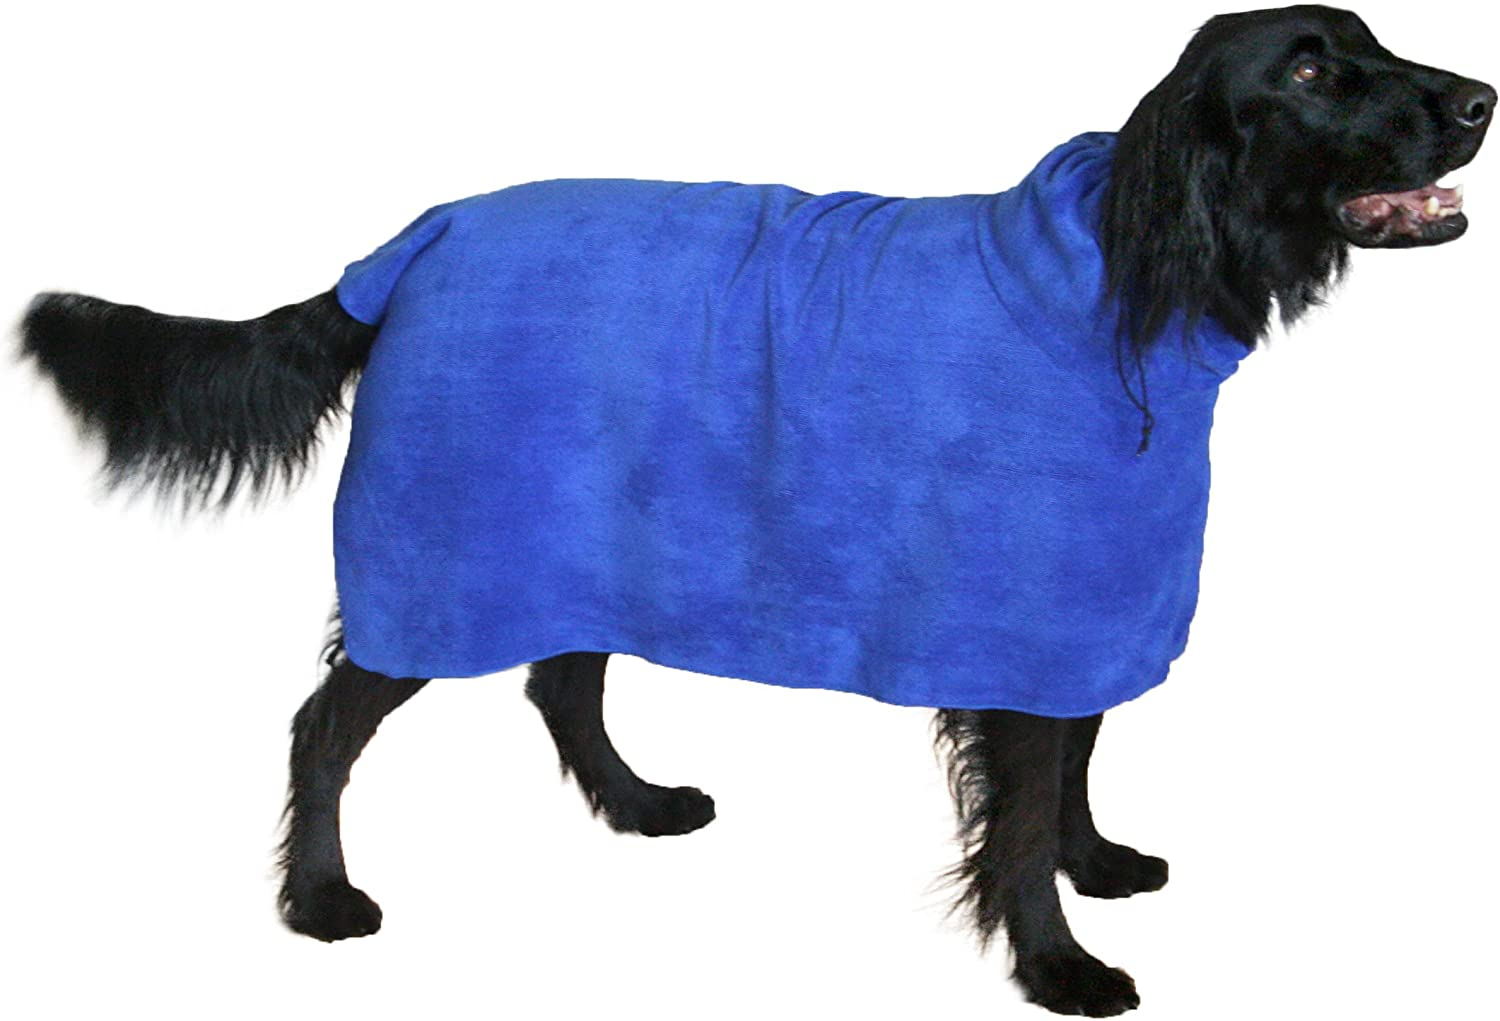 THE SNUGGLY DOG Easy Wear Dog Towel